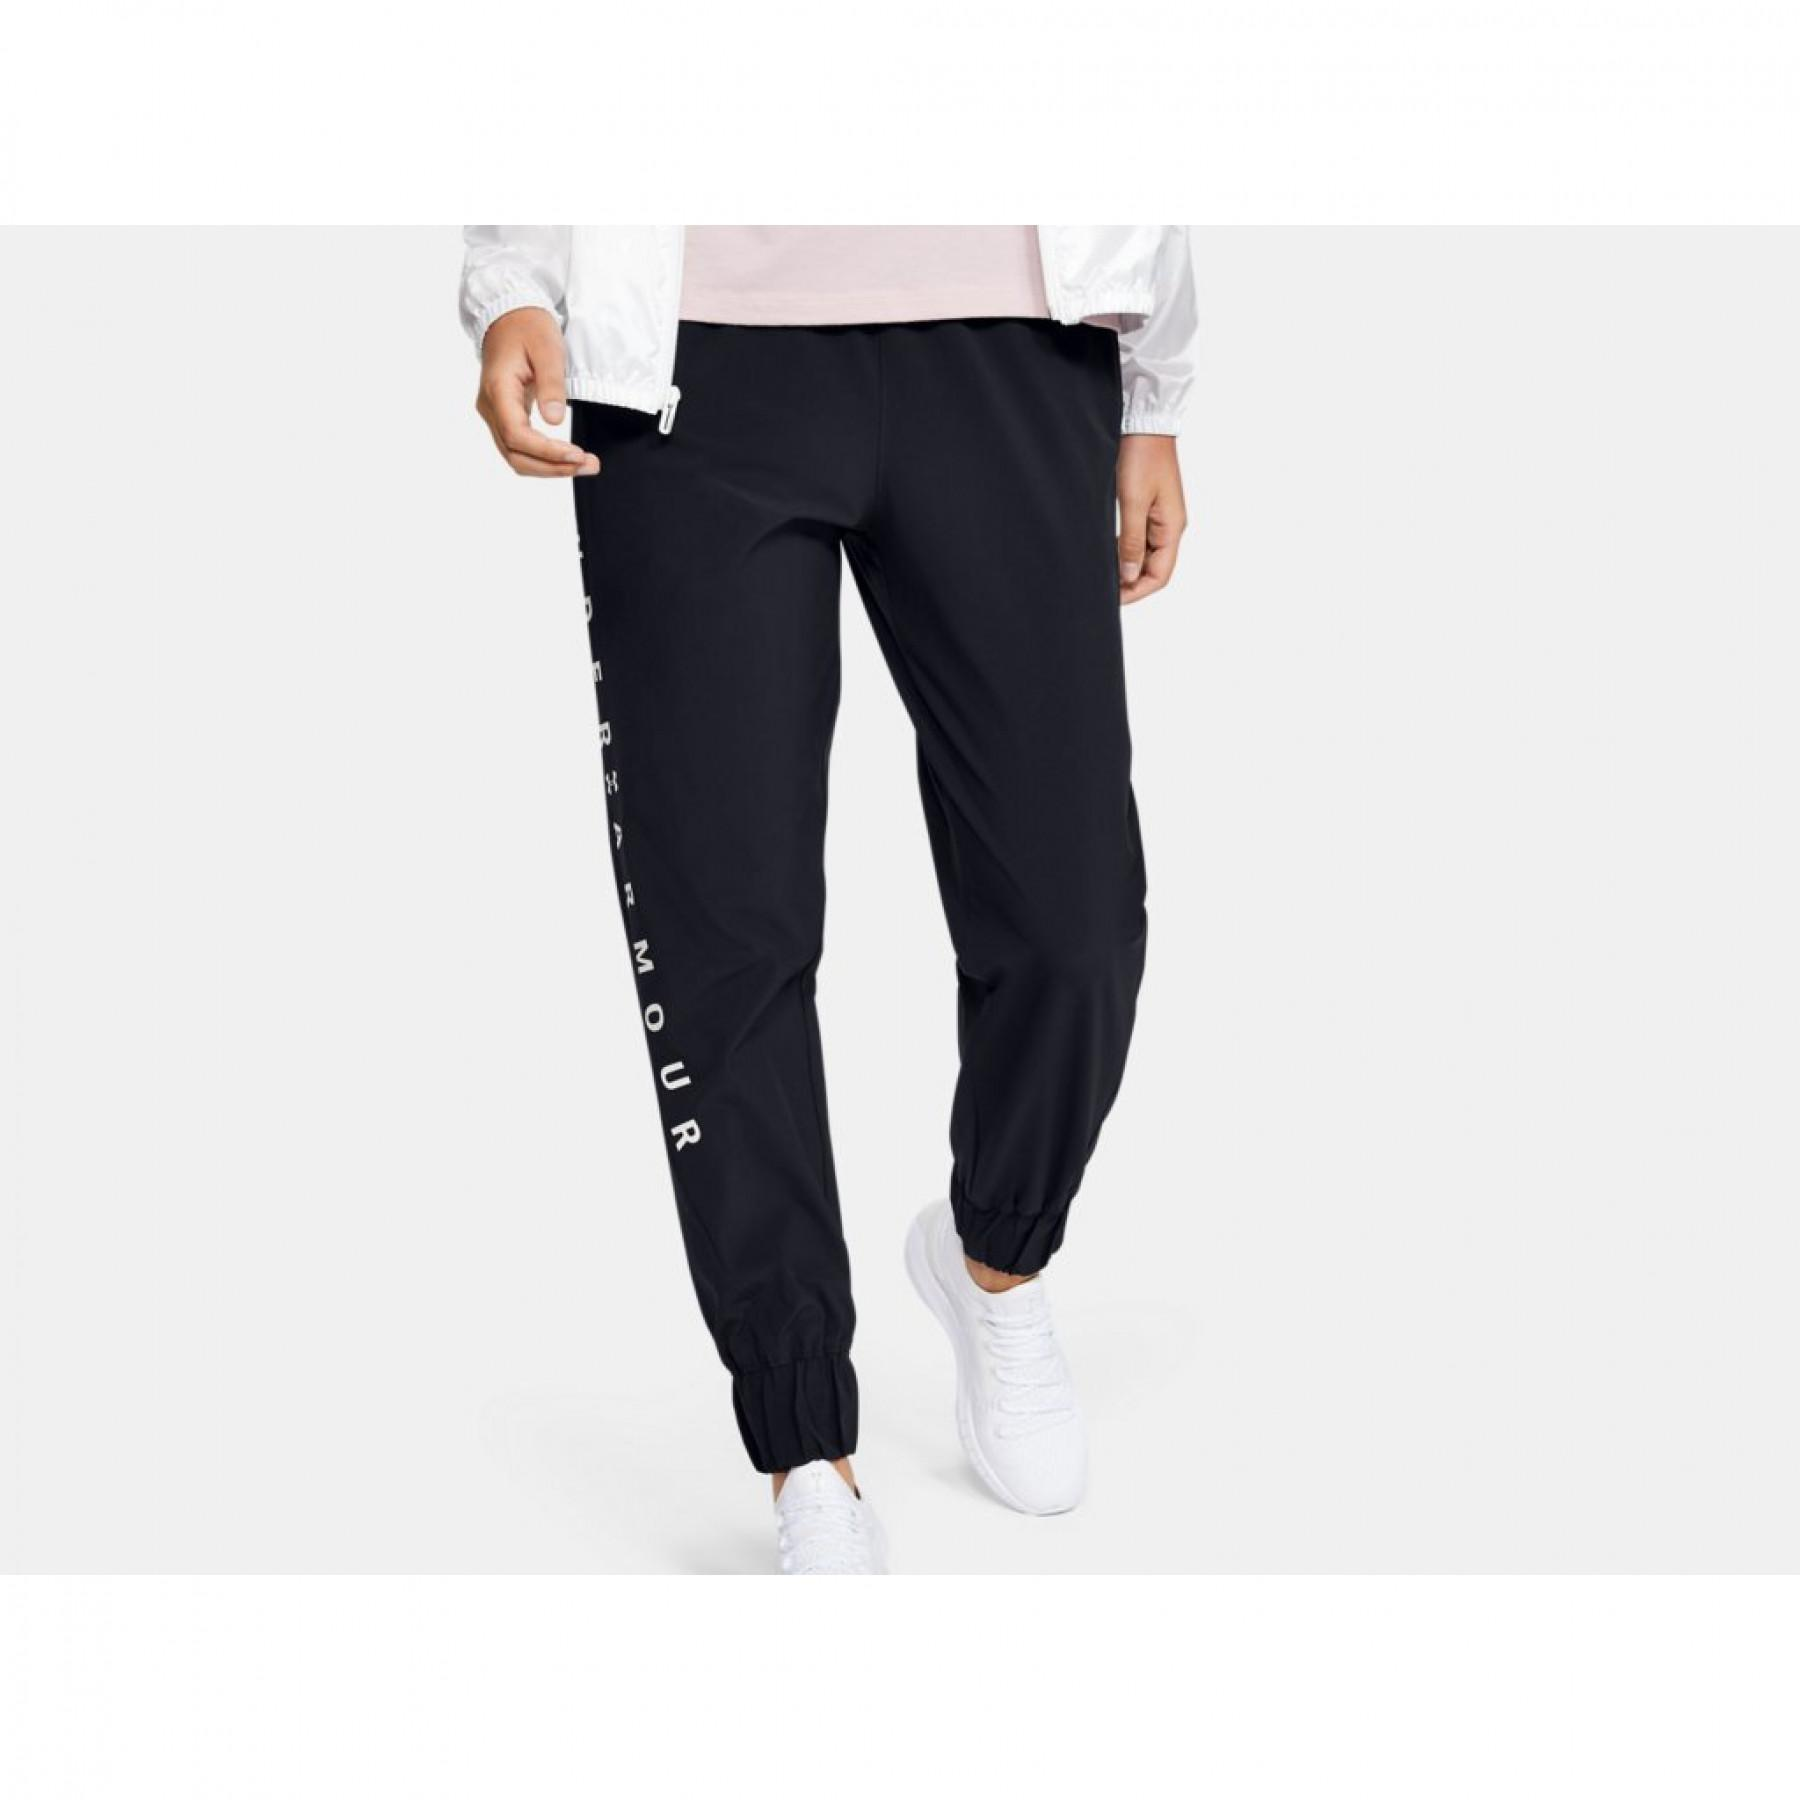 Women's trousers Under Armour Woven Branded